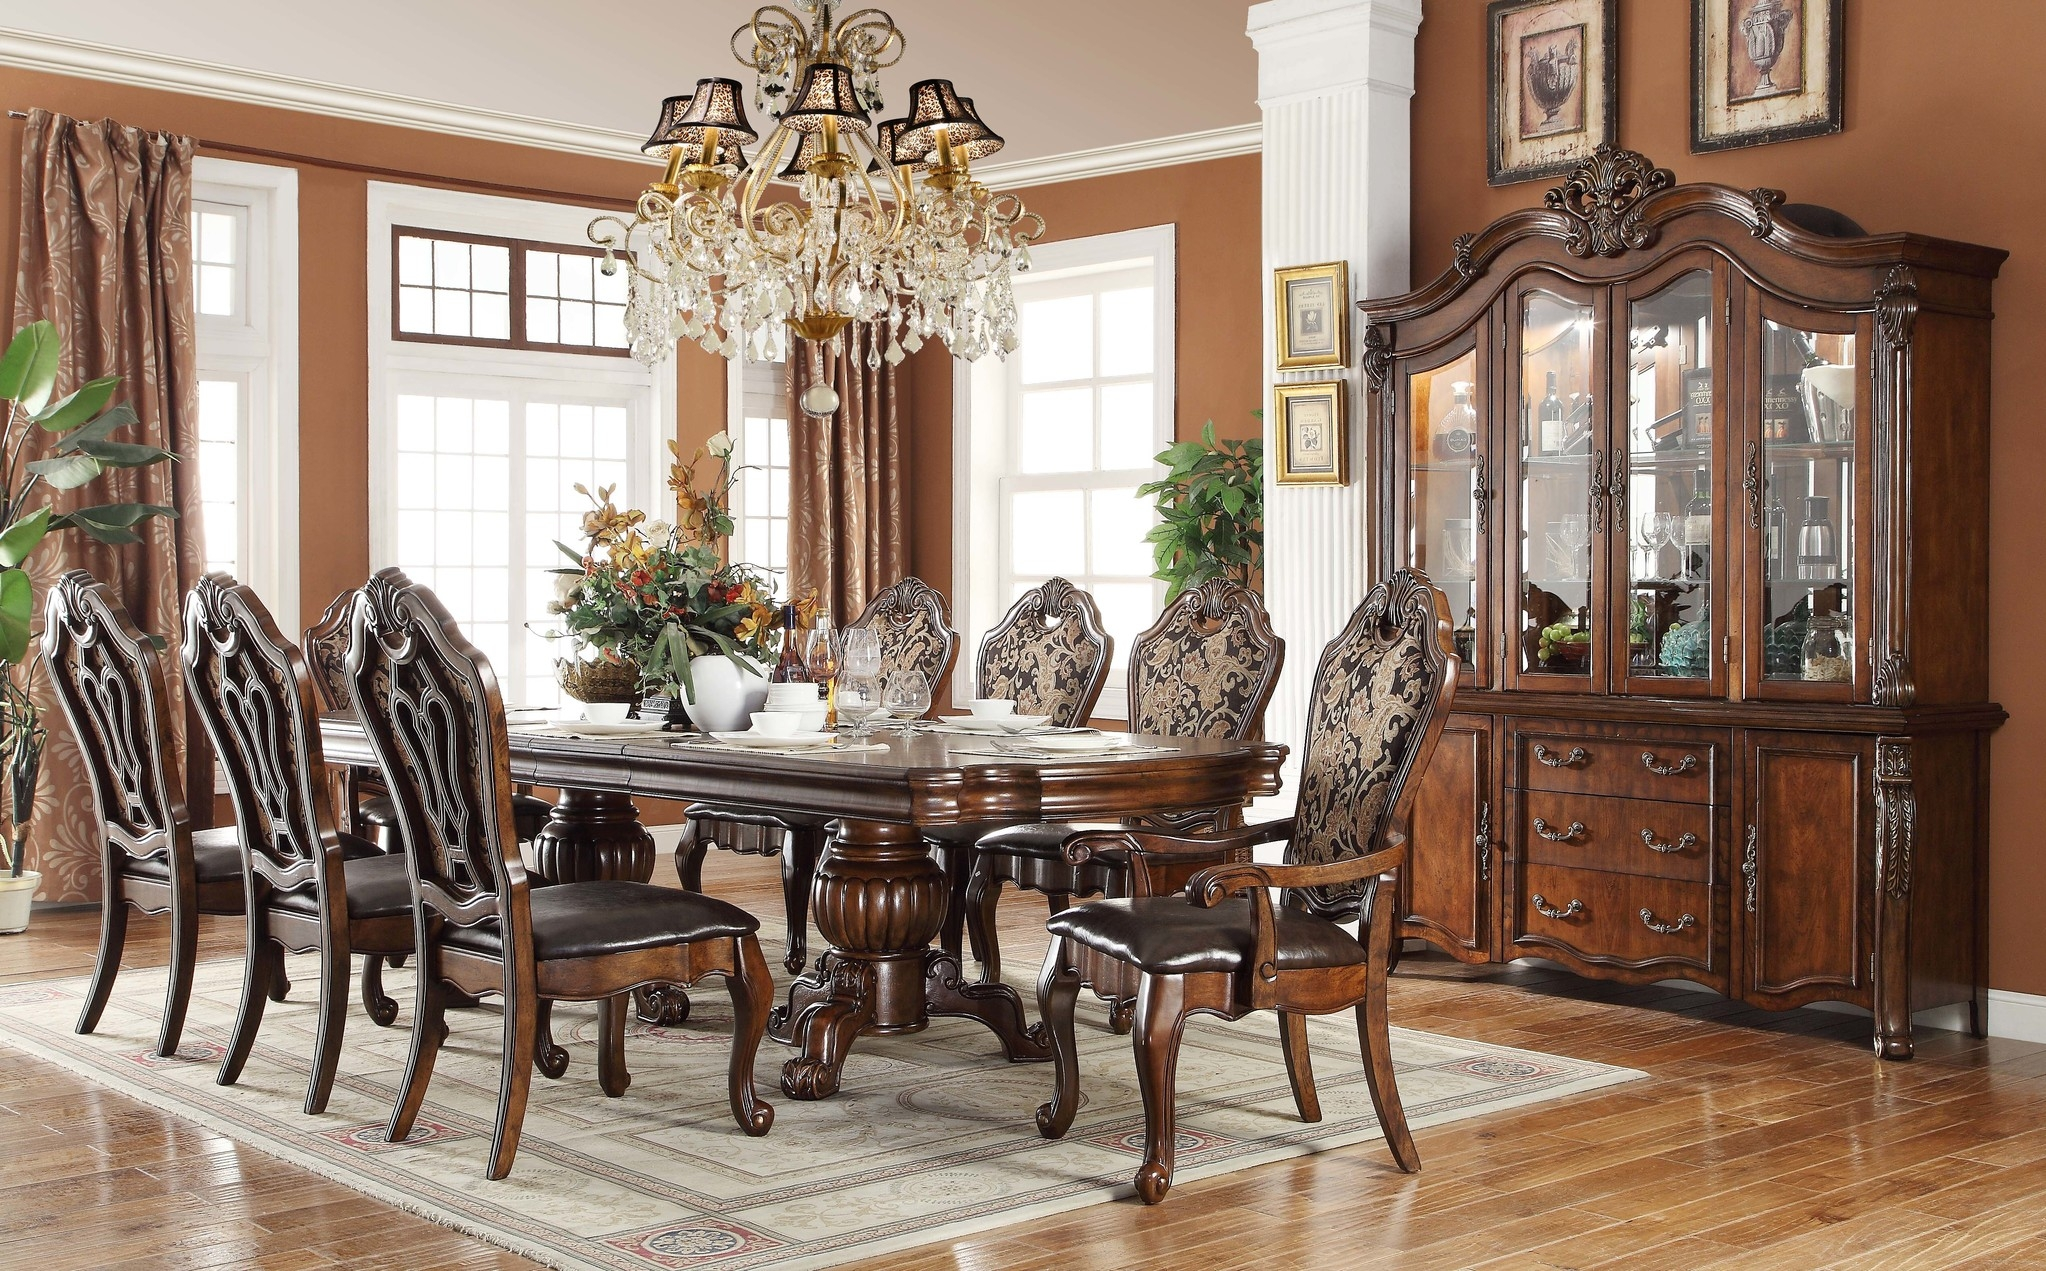 Formal Dining Room Sets You Ll Love In, Modern Formal Dining Room Sets For 8